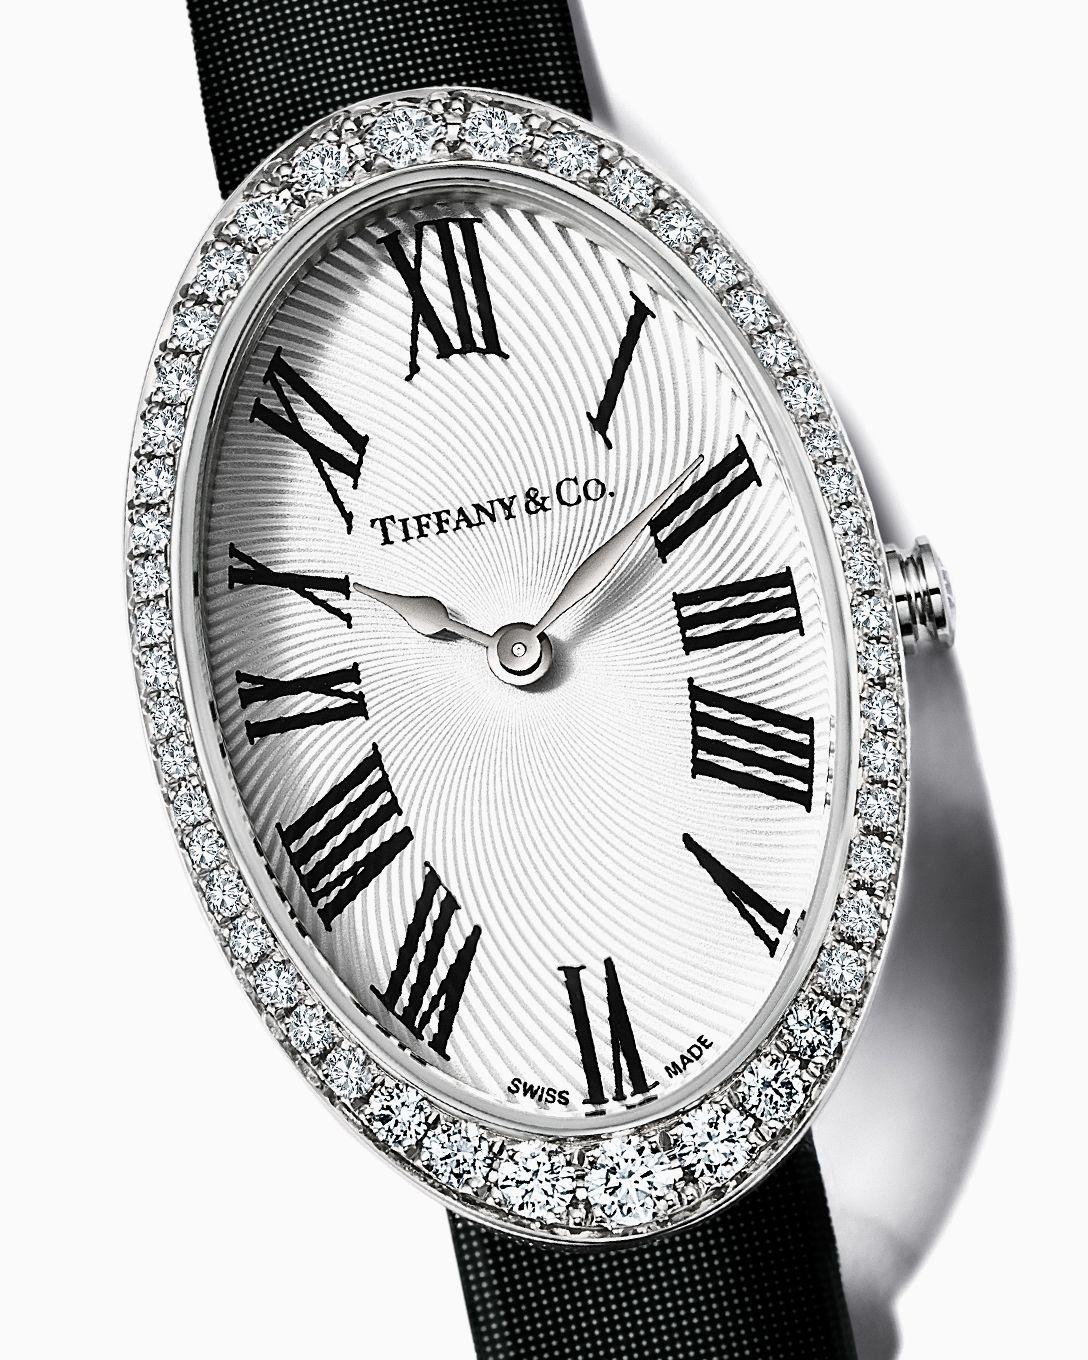 7d4b5d29fba4 Shop Tiffany Cocktail Watches